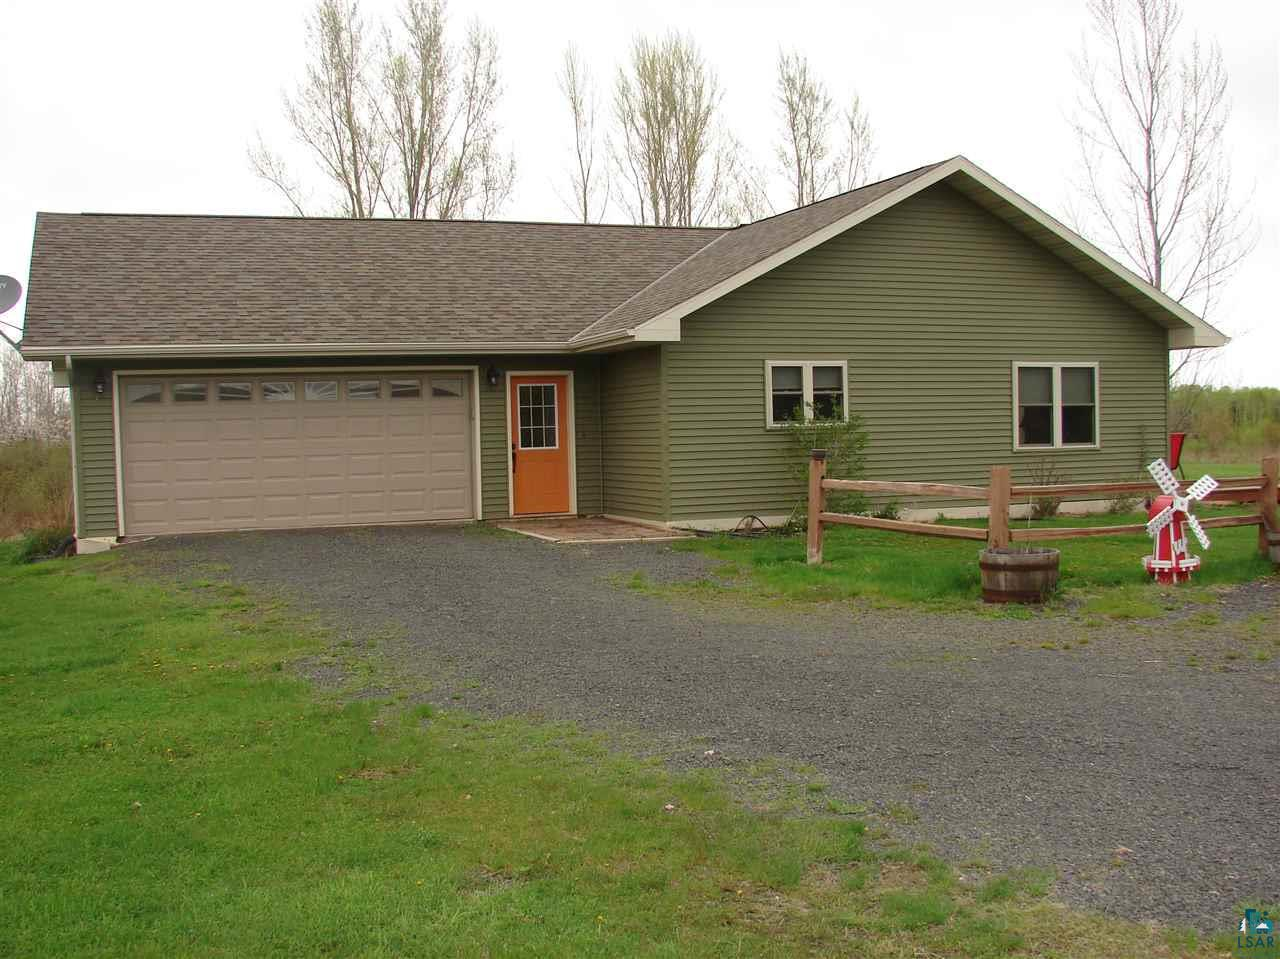 Ranch style home with 2 large bedrooms and open floor plan that walks out to backyard deck.  In floor heat in home and attached garage.  10 acres to explore and just a 2 minute walk to the Brule River!